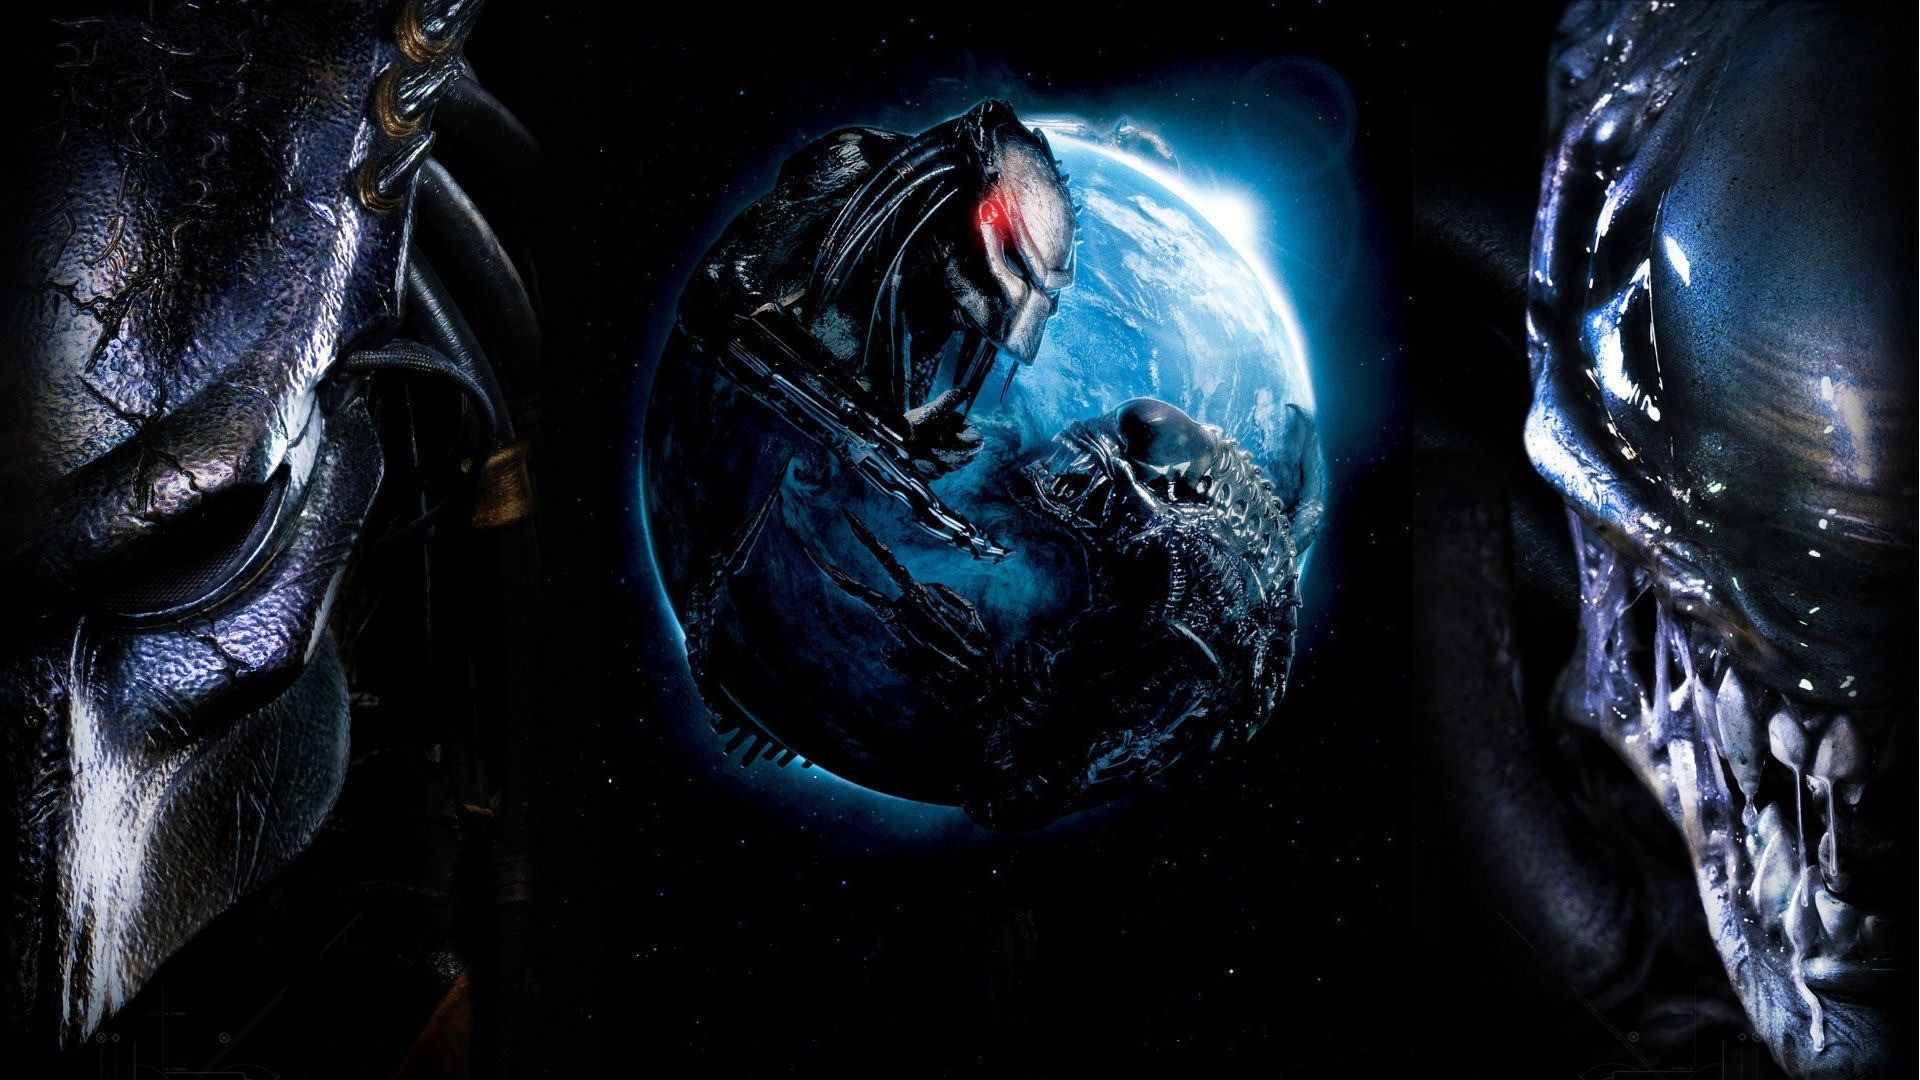 alien wallpaper pack 1080p hd Alien vs predator